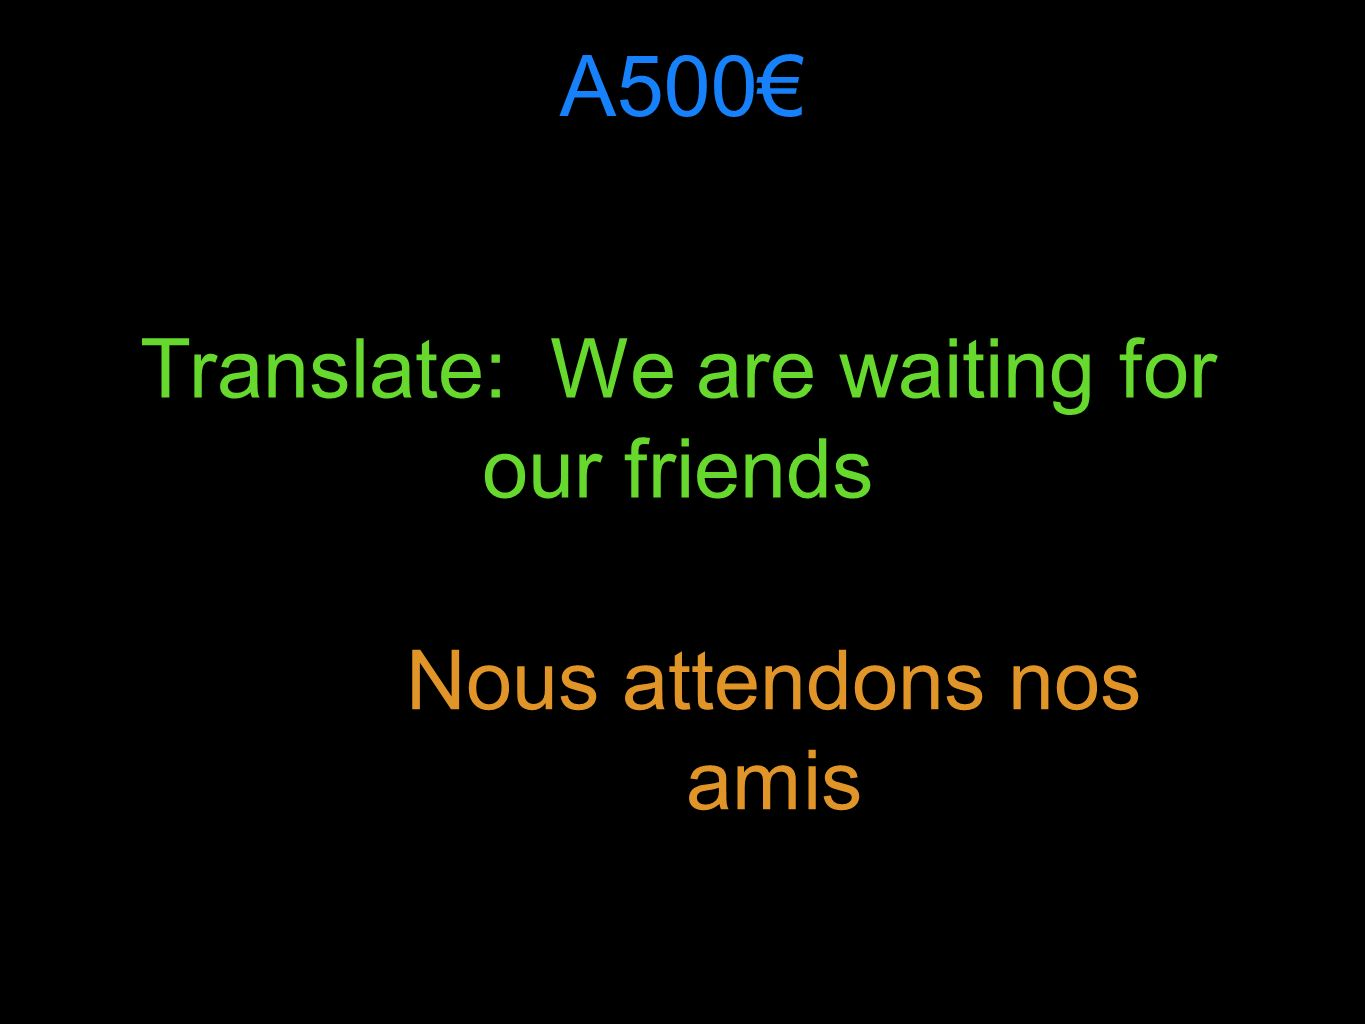 A500 Translate: We are waiting for our friends Nous attendons nos amis